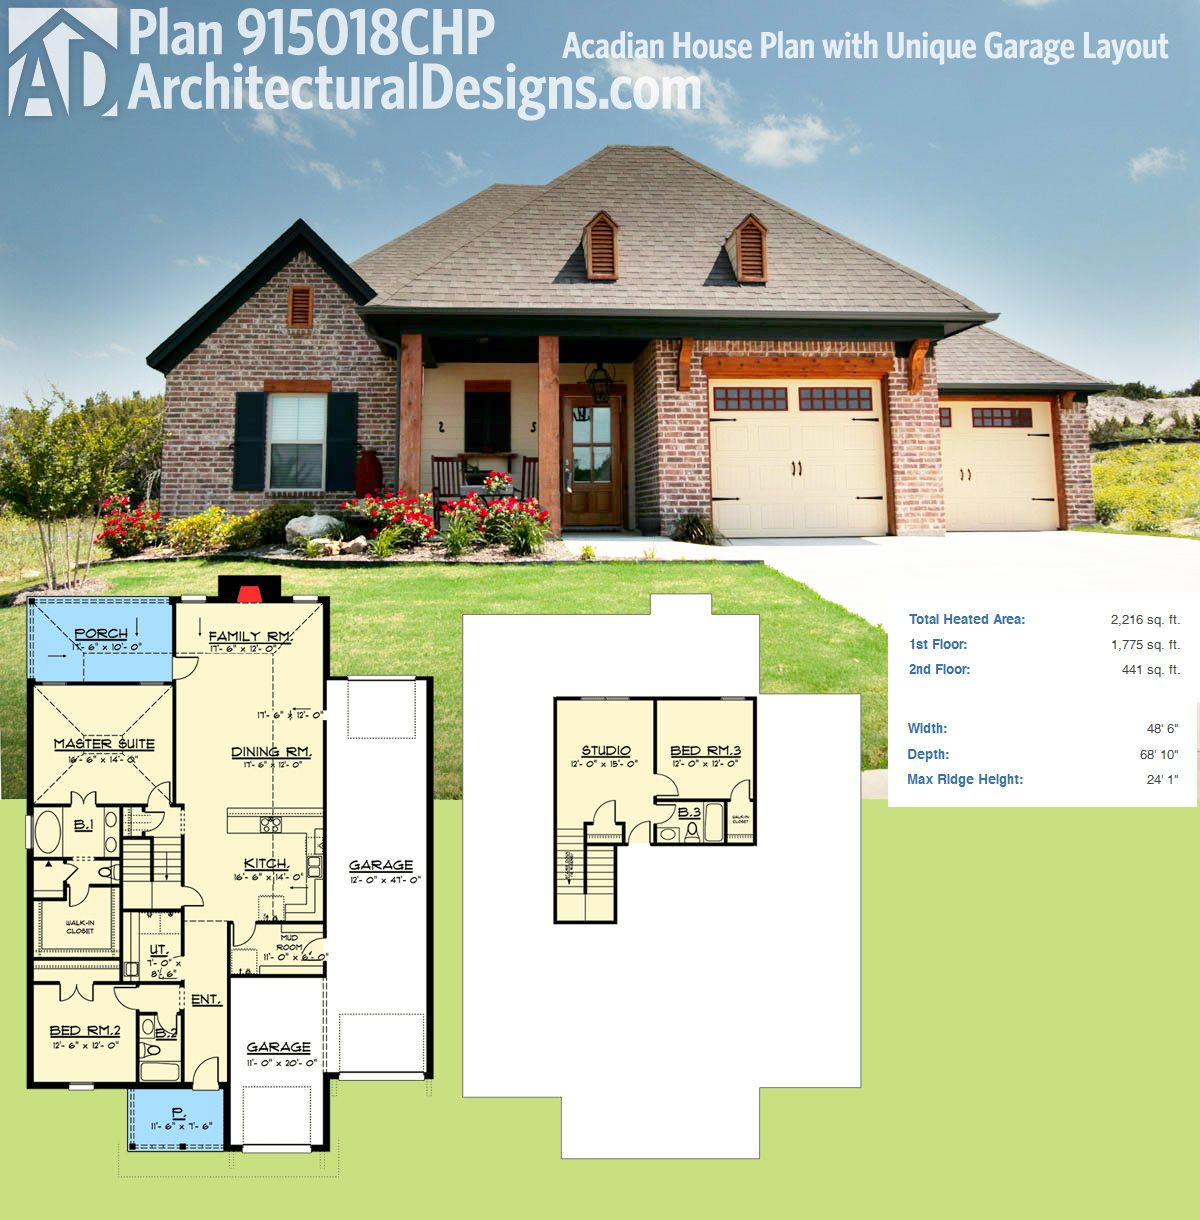 Plan 915018chp Acadian House Plan With Unique Garage Layout Acadian House Plans House Plans Courtyard House Plans